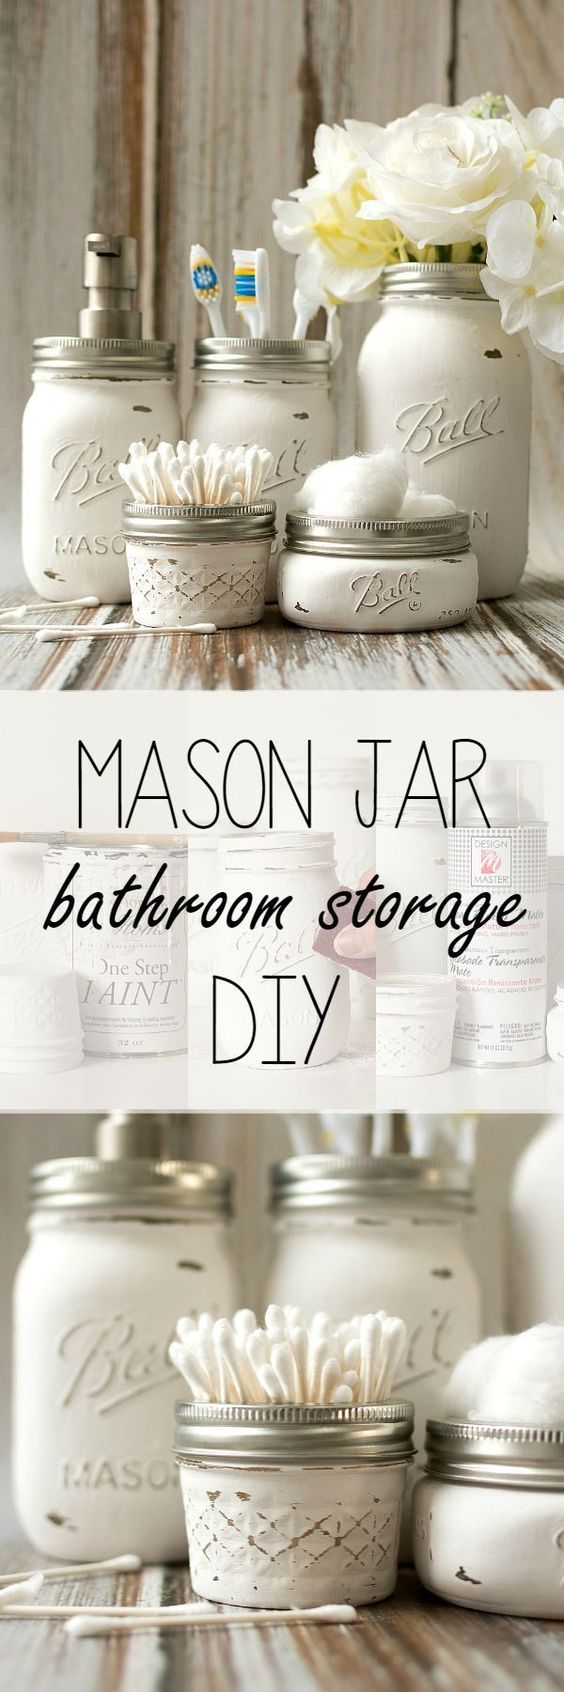 Mason Jar Bathroom Storage & Accessories.